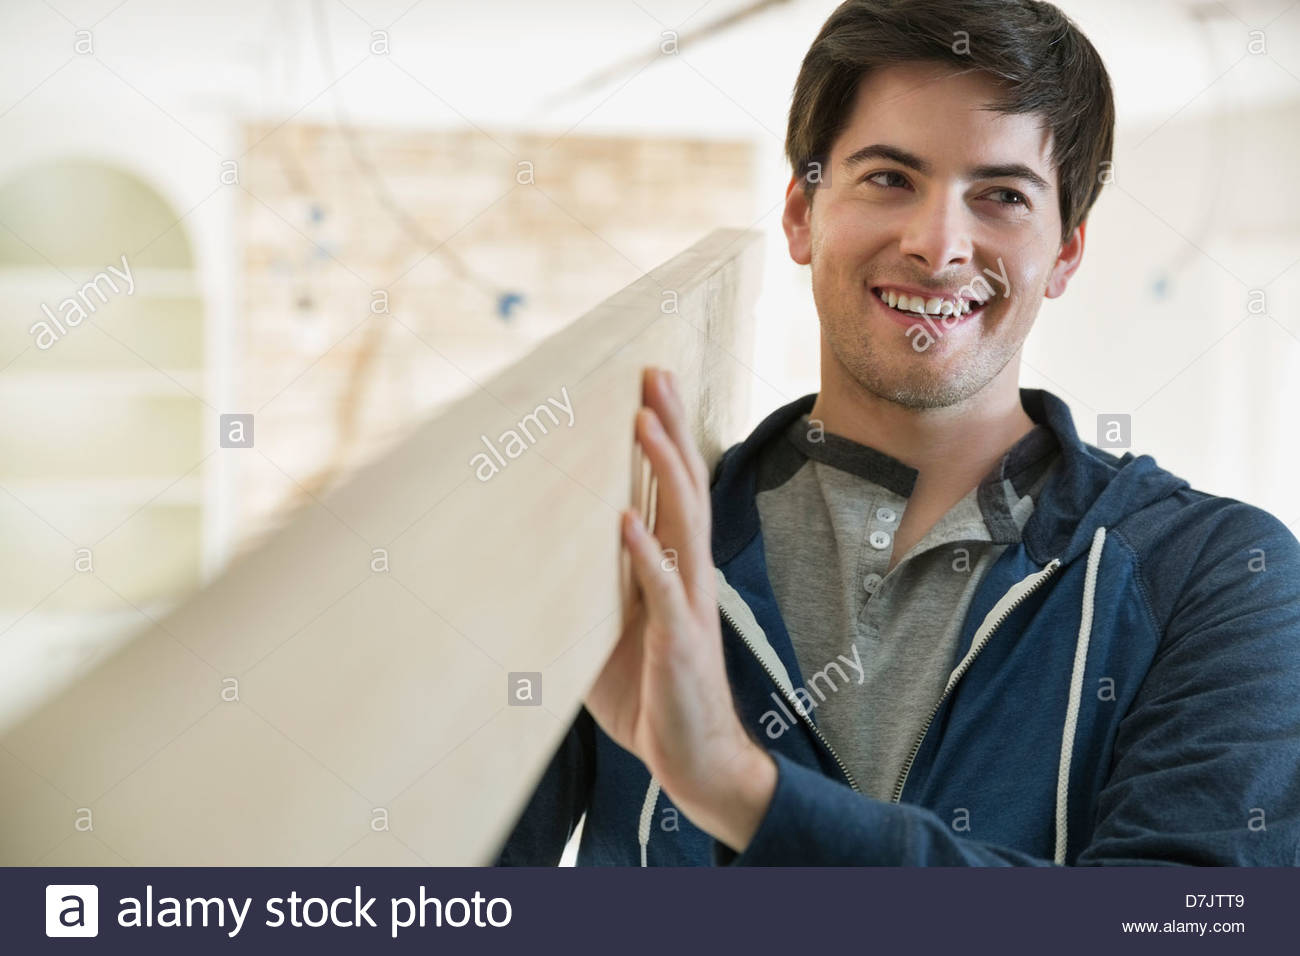 Smiling young man carrying lumber at home - Stock Image